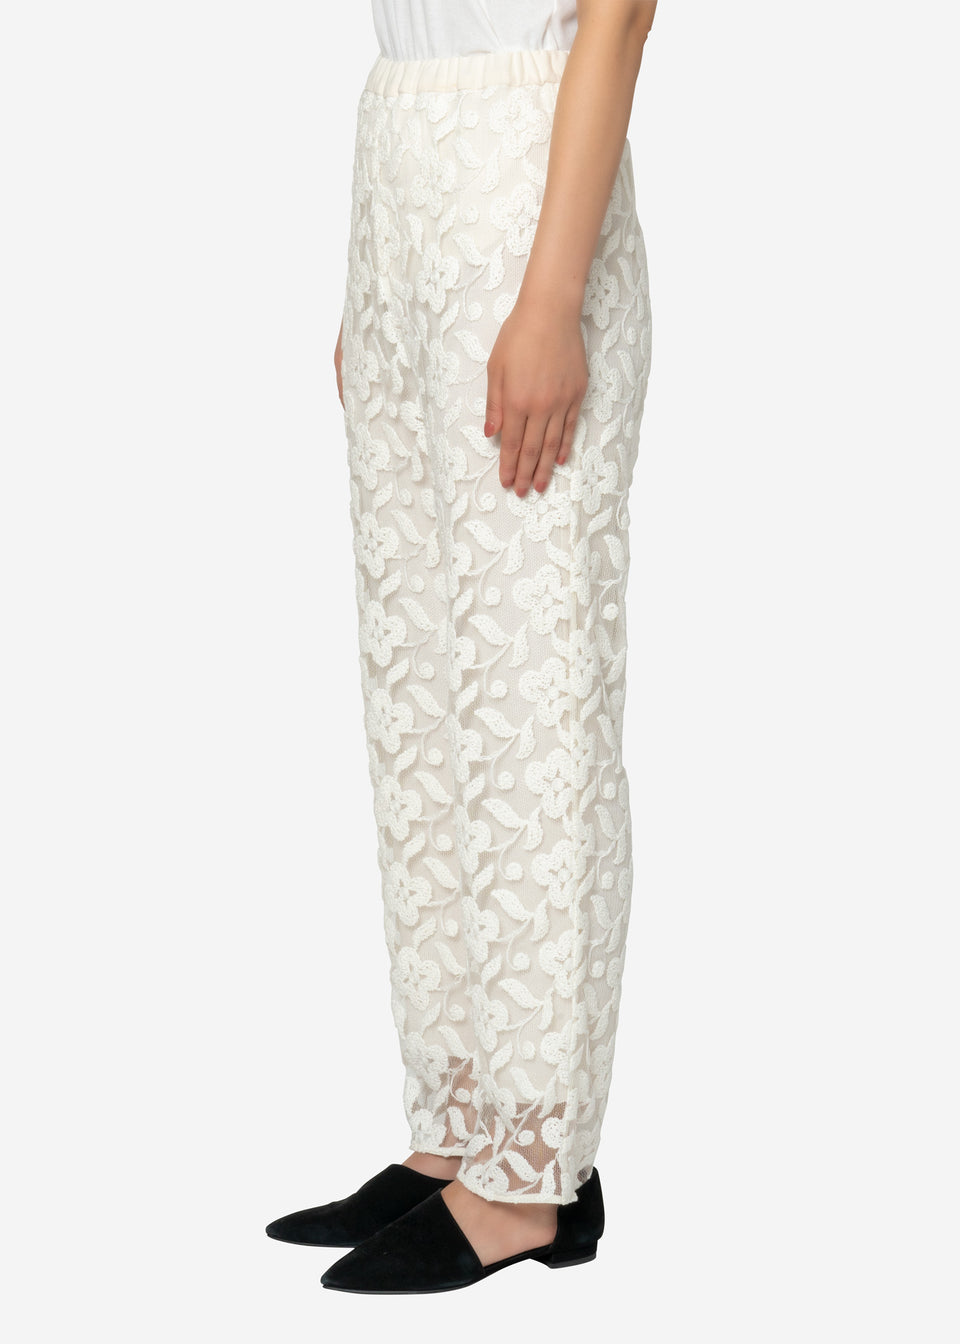 Flower Sheer Jacquard Sleeveless Dress in Off White